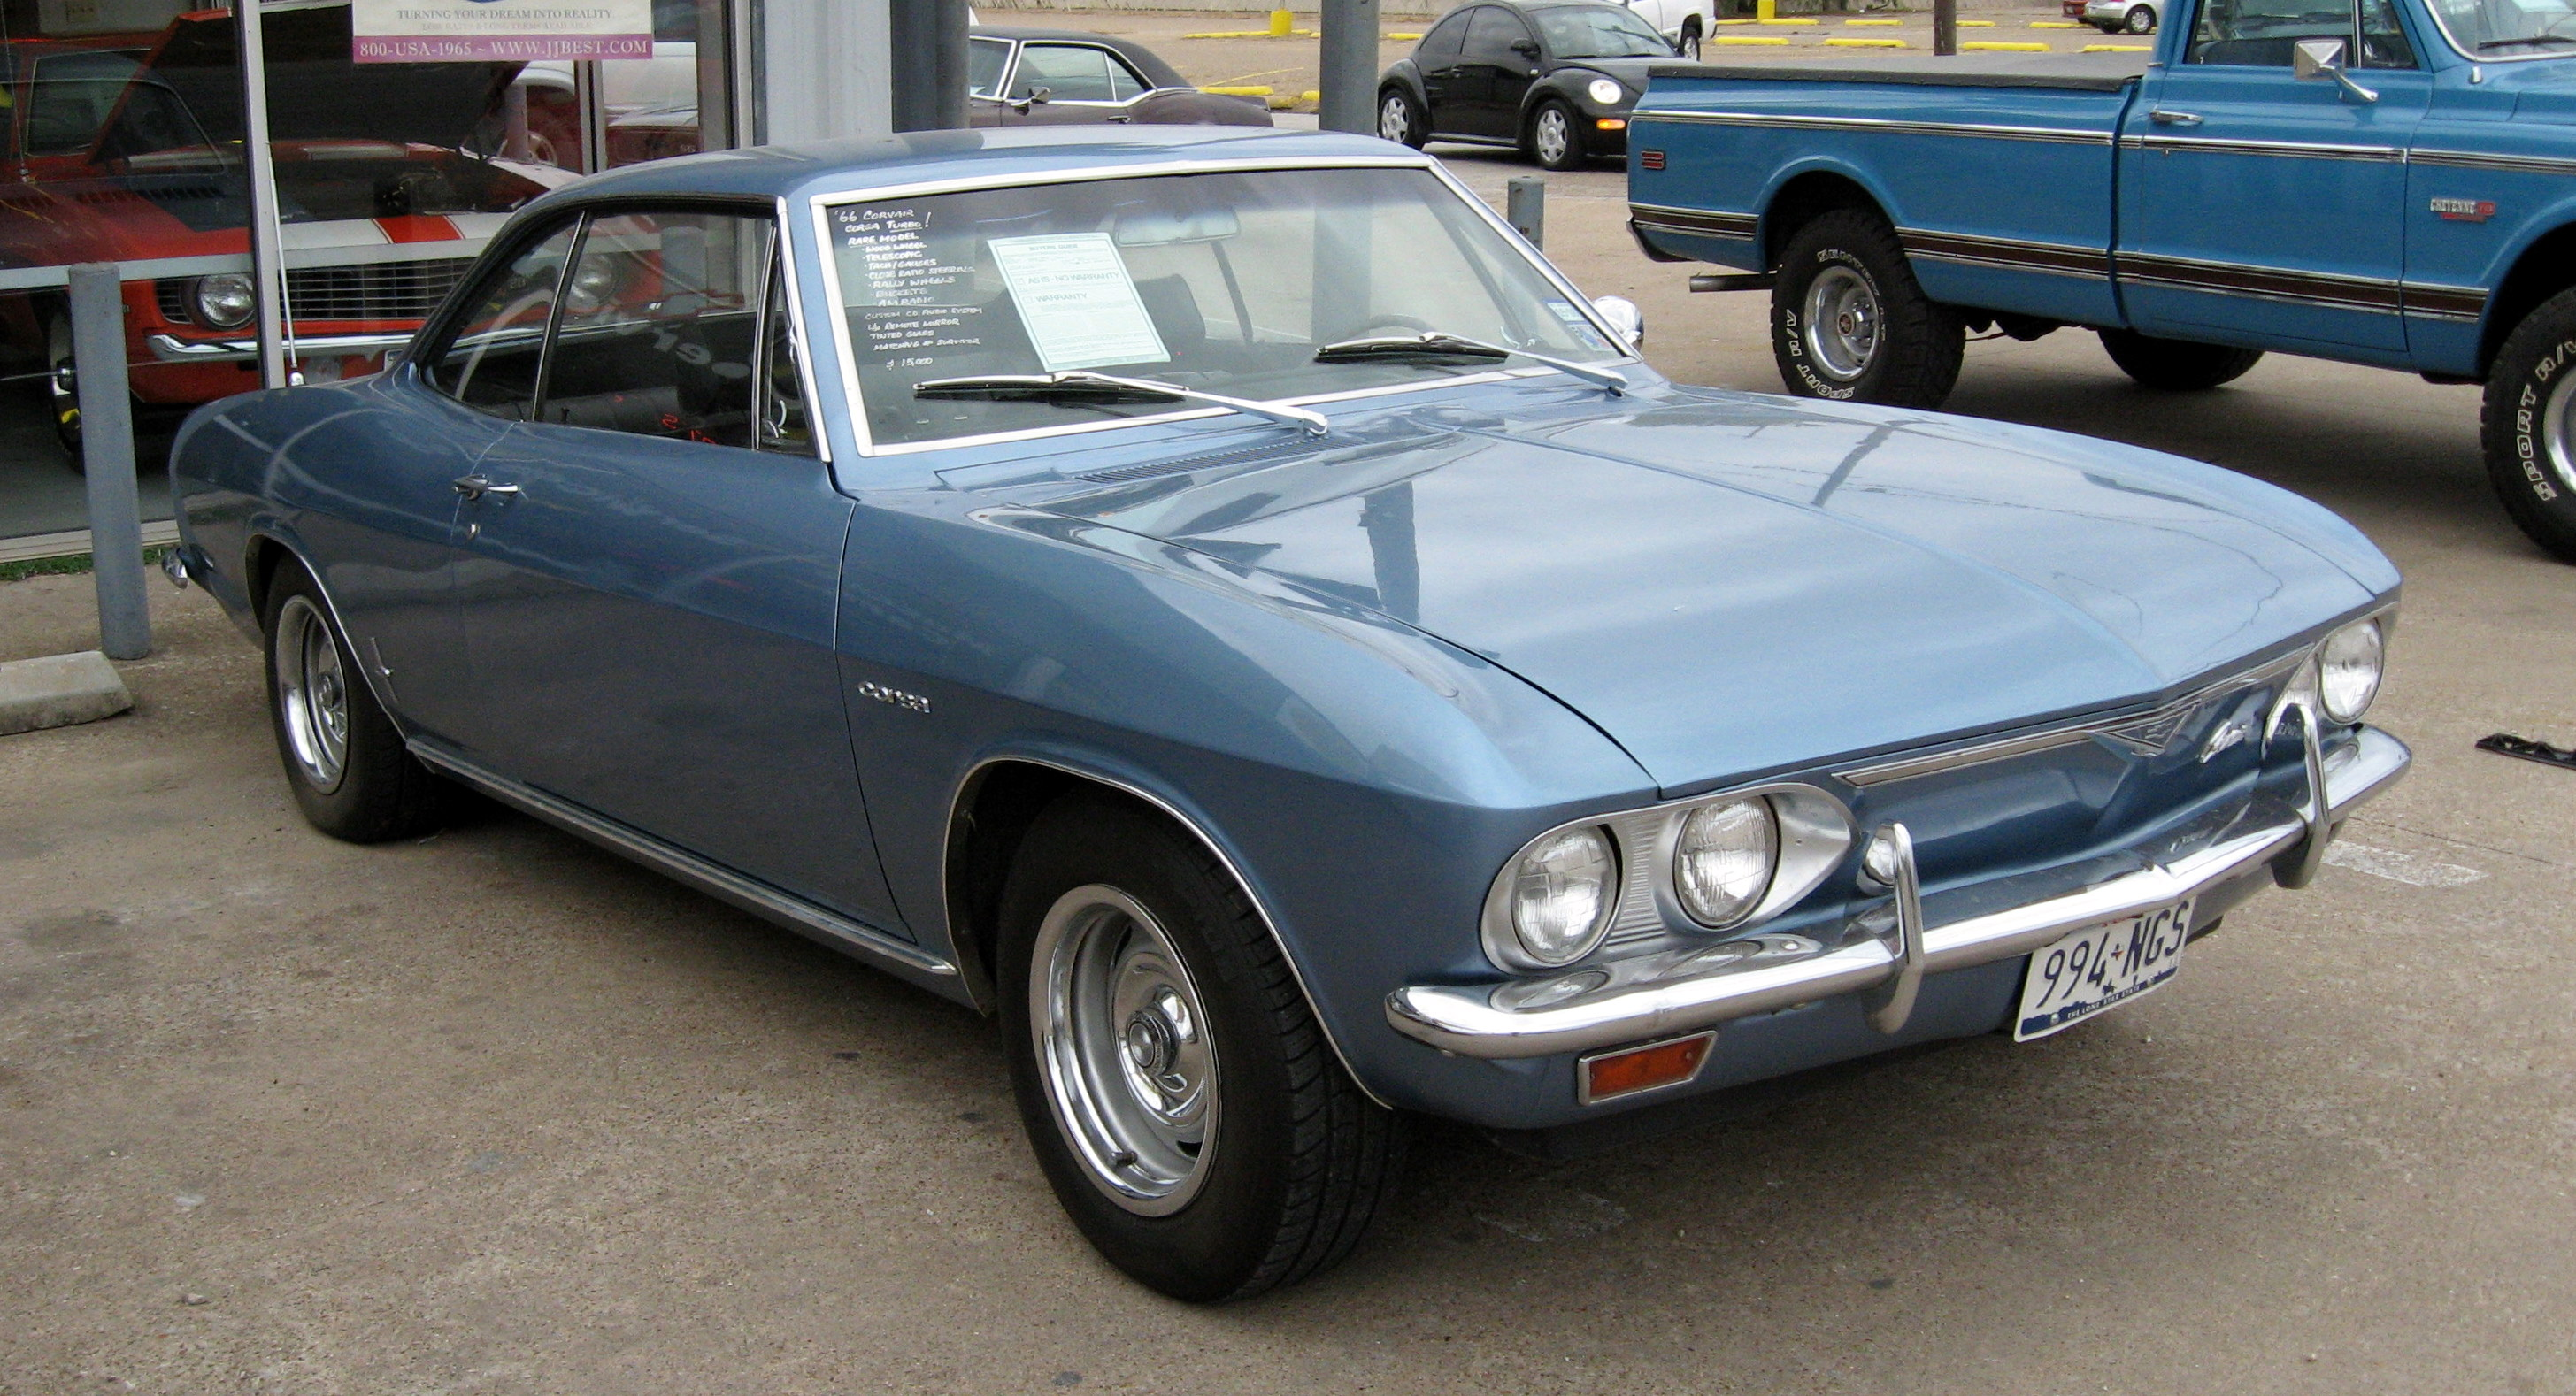 CHEVROLET CORVAIR blue